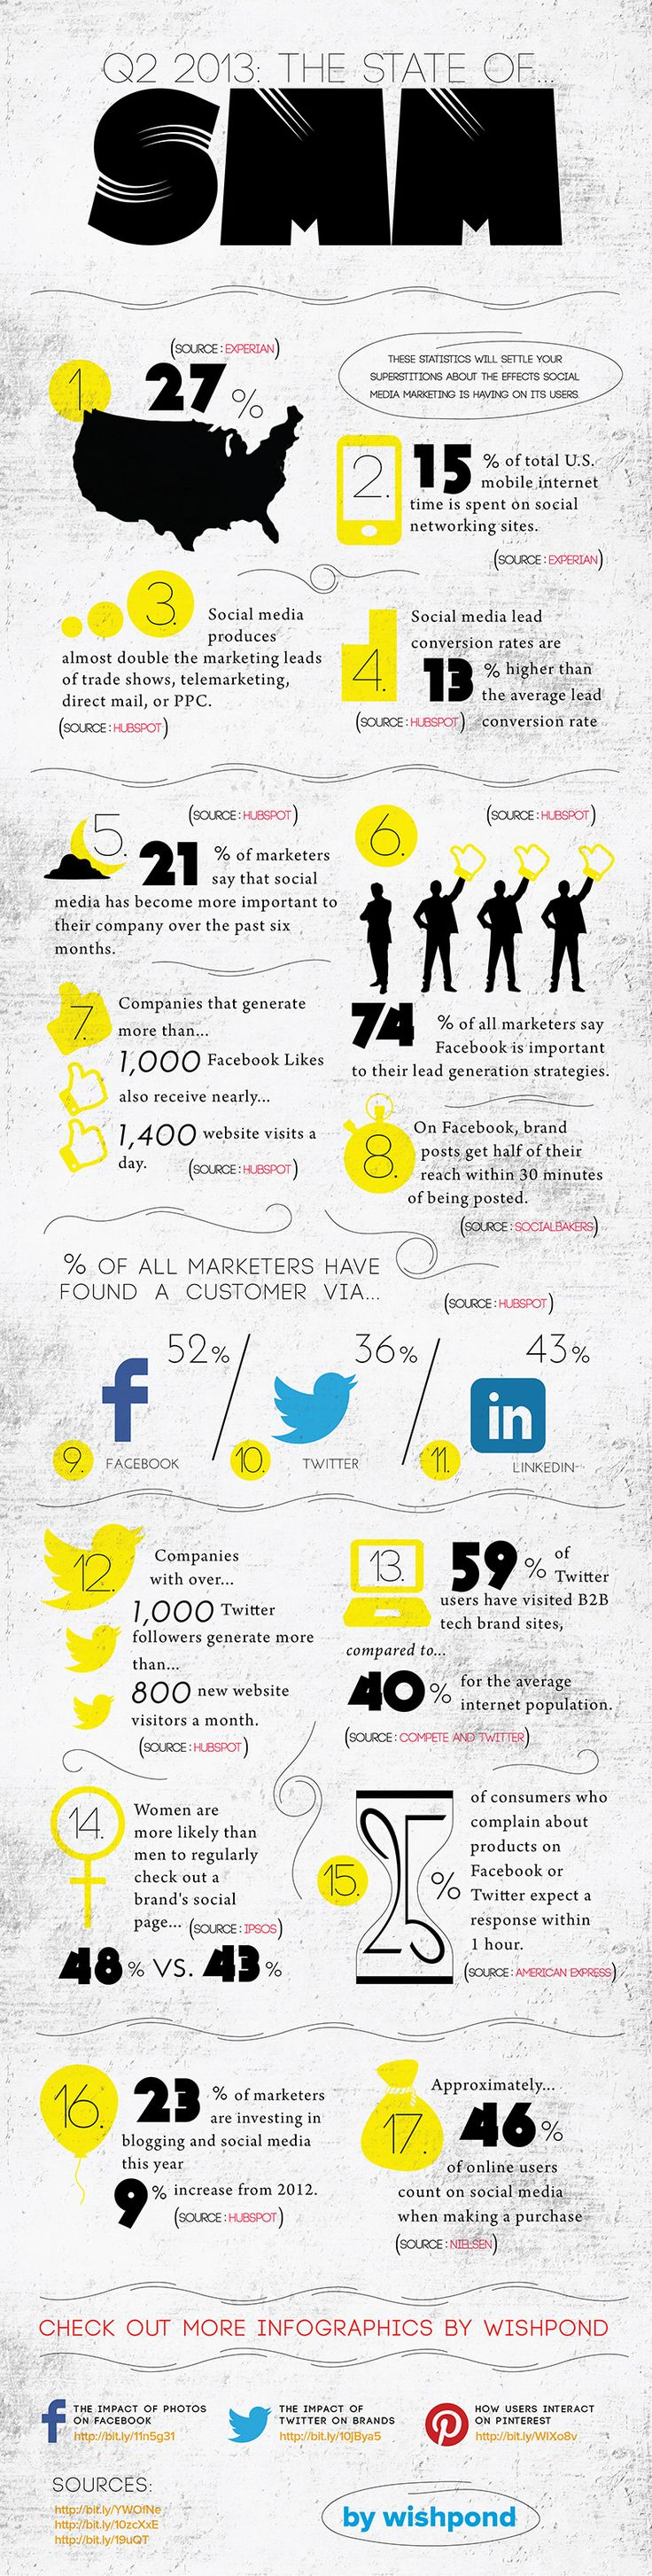 Marketing-Infographic-2013Jul7-Q2-2013-The-State-of-Social-Media-Marketing-socialmedia-i Marketing Infographic : 2013/Jul/7 -  Q2 2013: The State of Social Media Marketing  ---- #socialmedia #i...